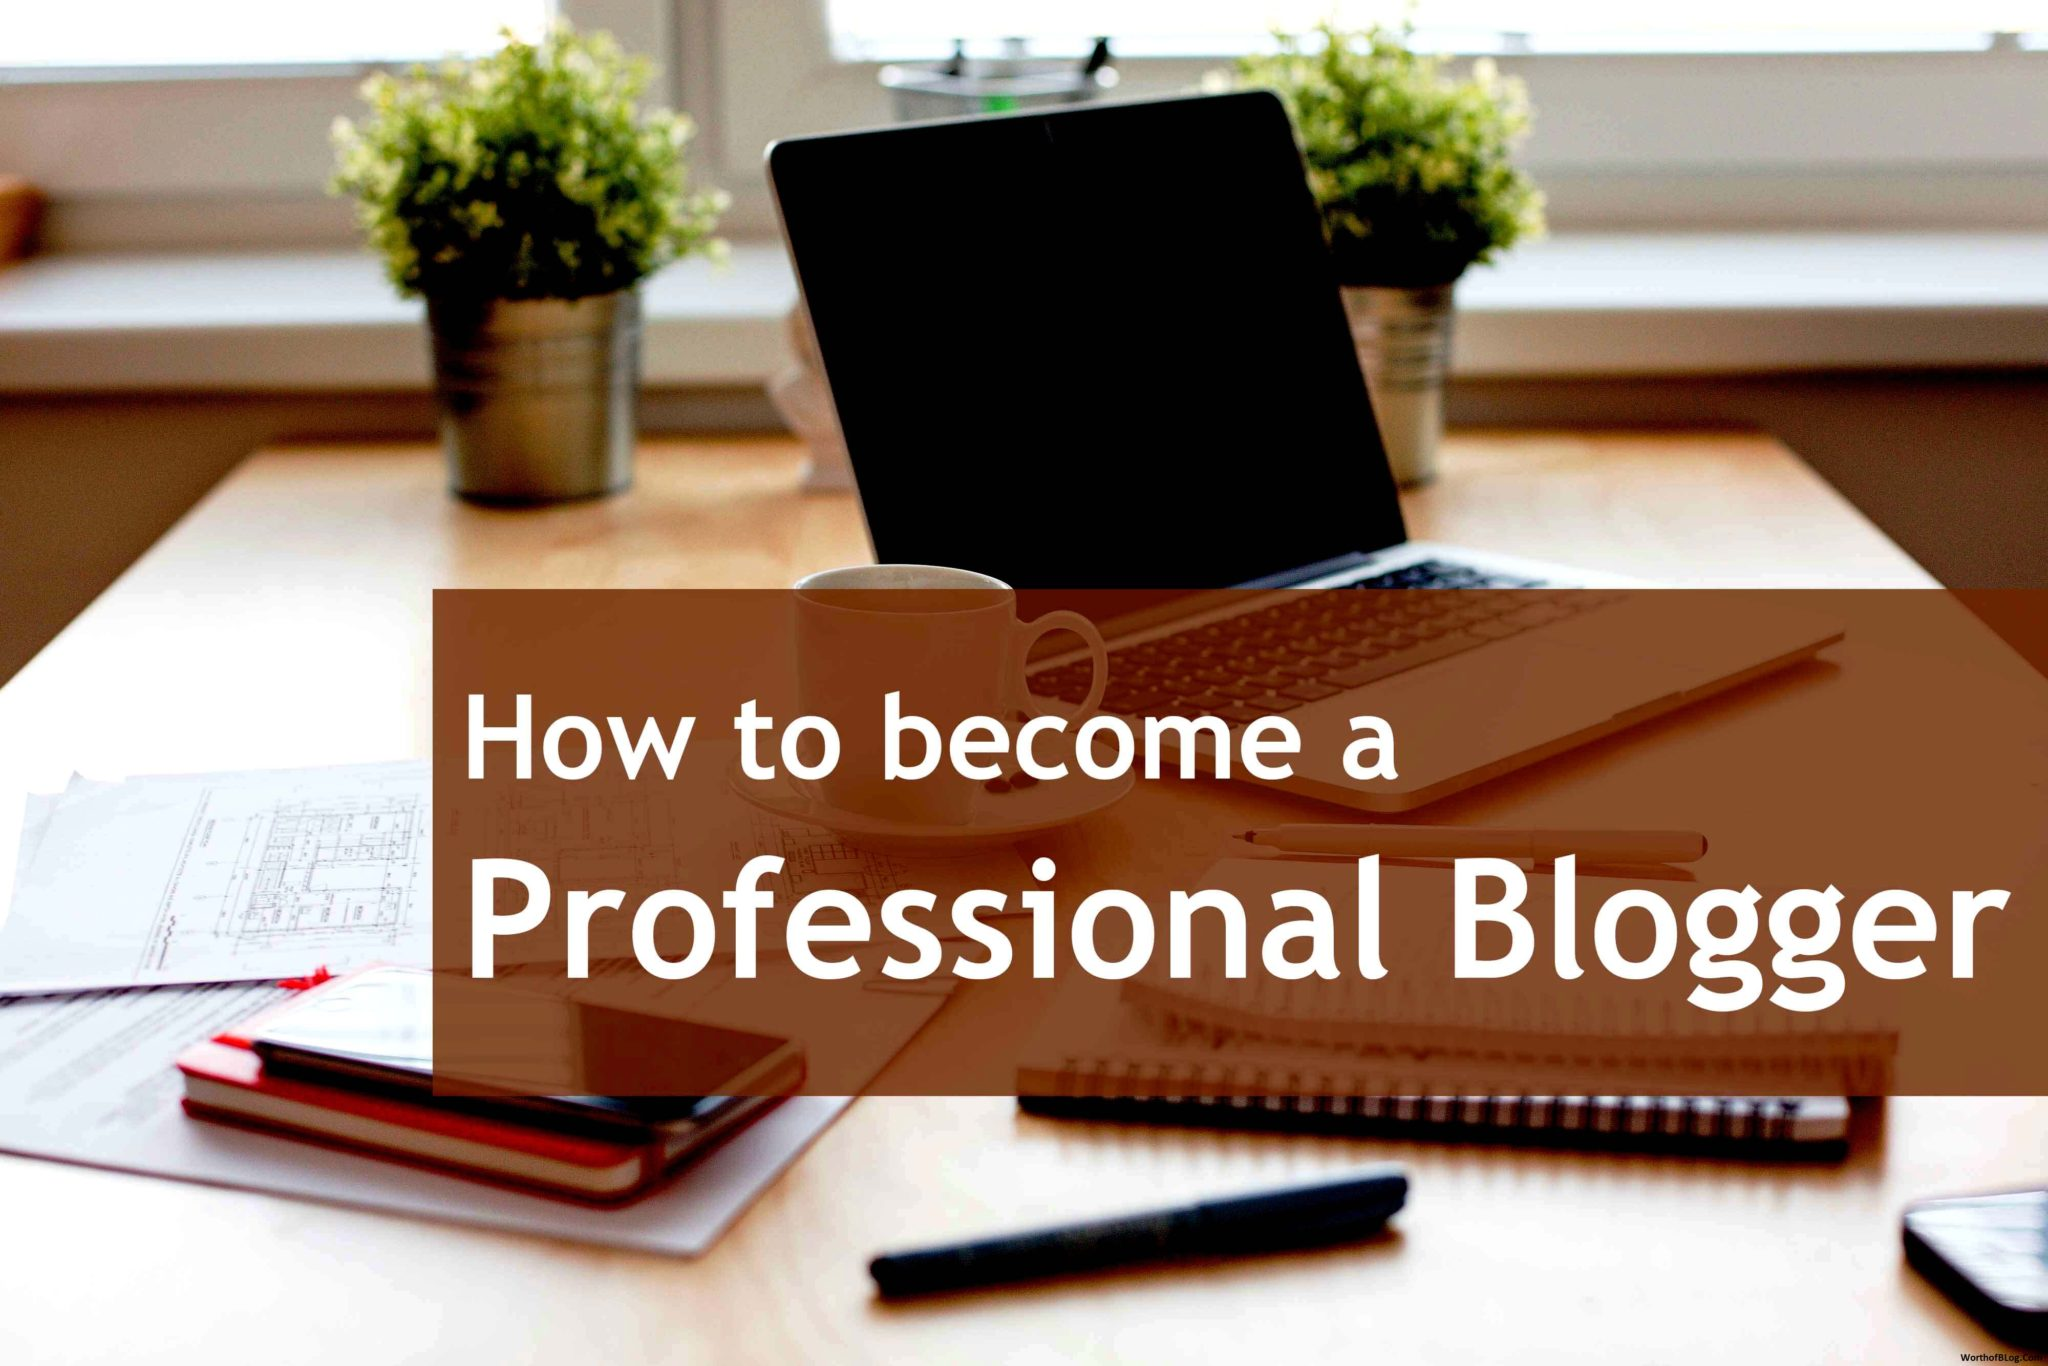 12 Secrets to Become a Professional Blogger